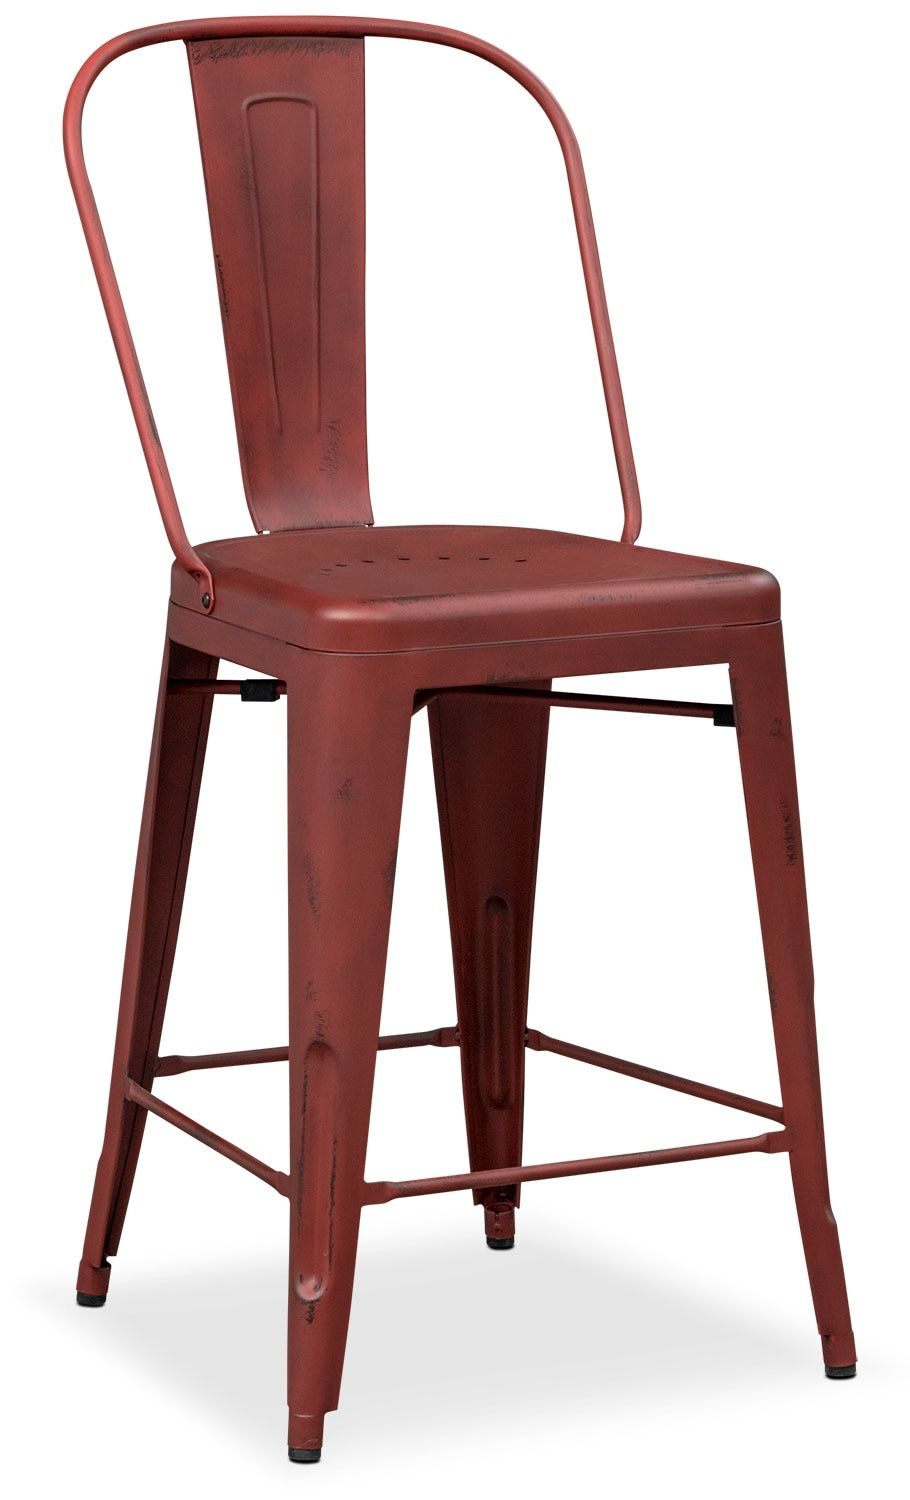 $120 At American Signature Furniture Dining Room Furniture   Olin  Splat Back Barstool   Red